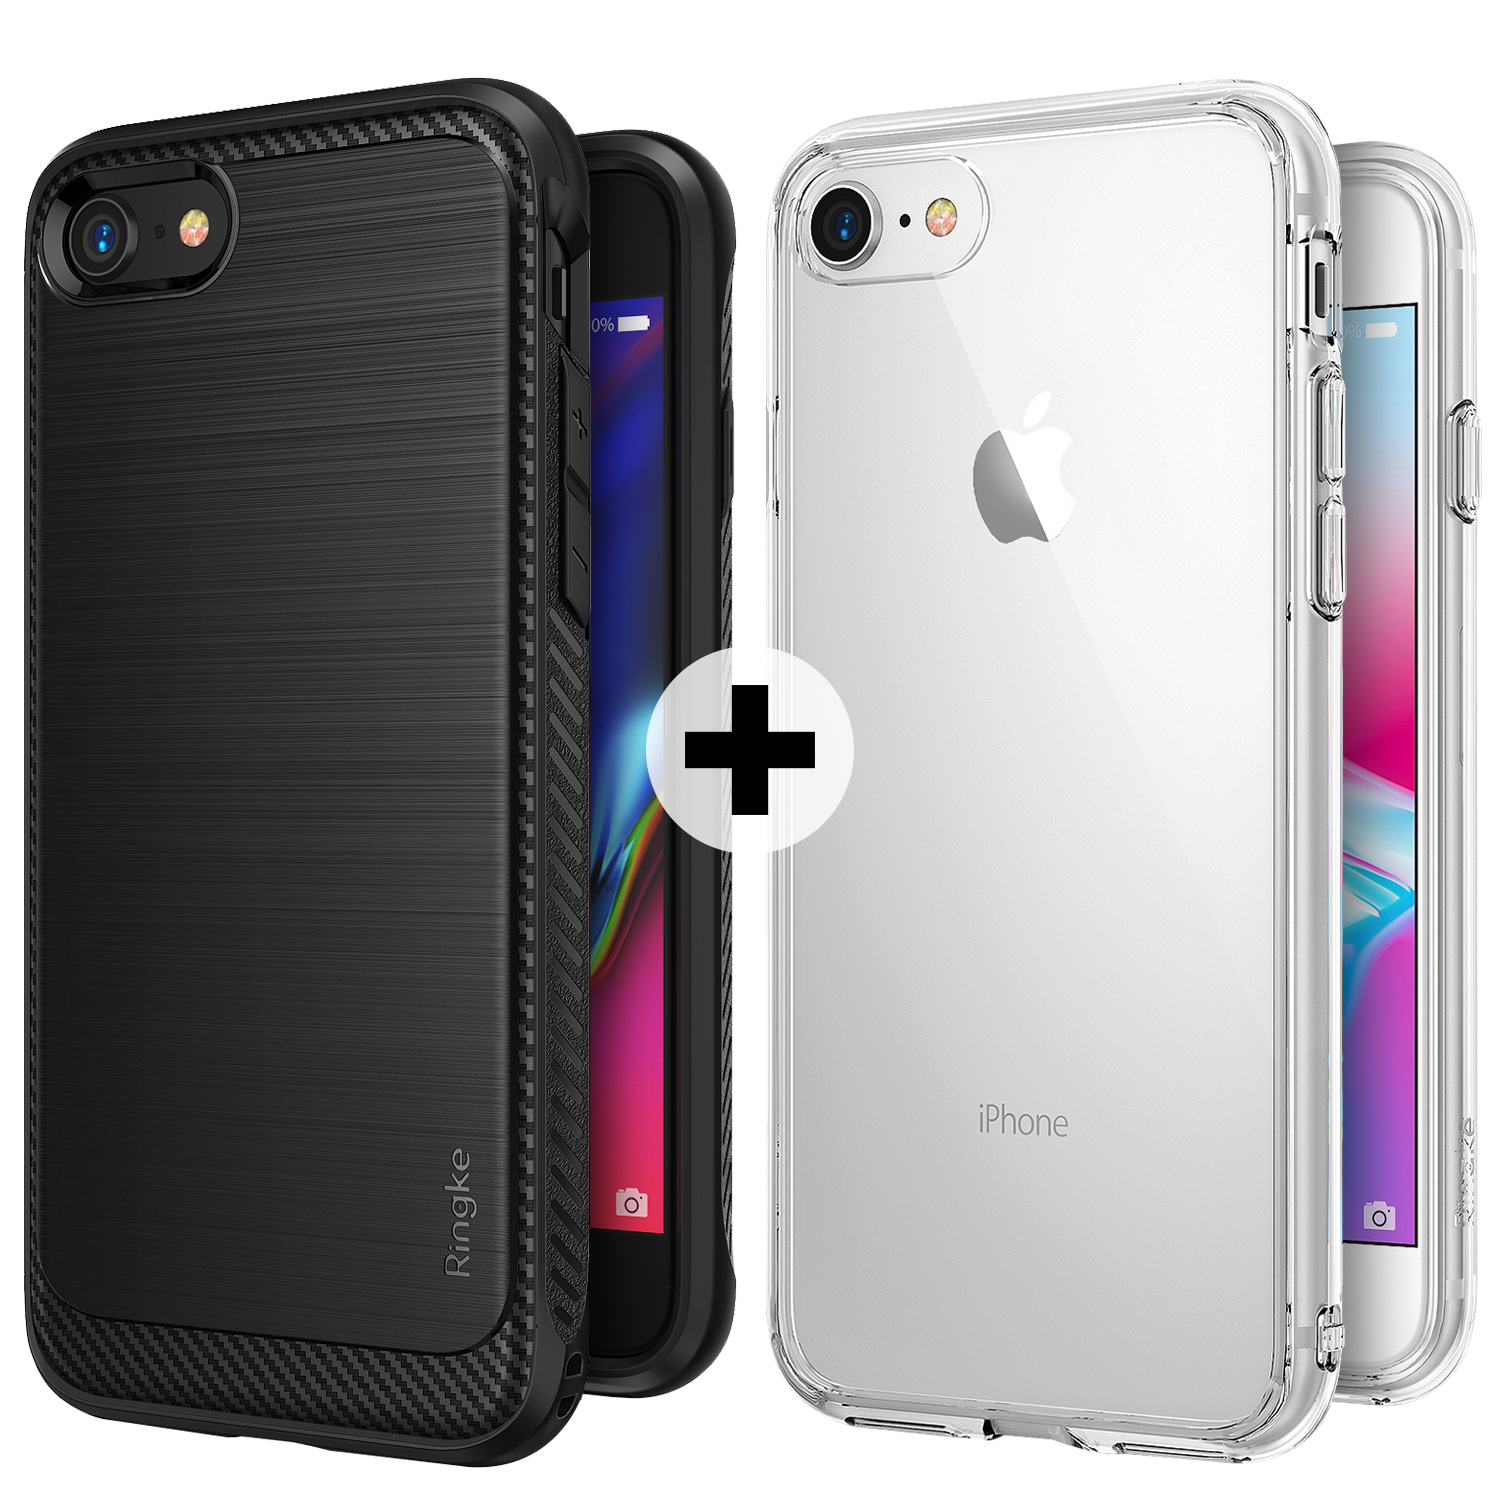 Apple iPhone 7 / iPhone 8 Phone Case, Ringke [Onyx] Resilient Strength Flexible Durability TPU Defensive + [FUSION] Crystal Transparent PC Back TPU Bumper Drop Protection Case Cover